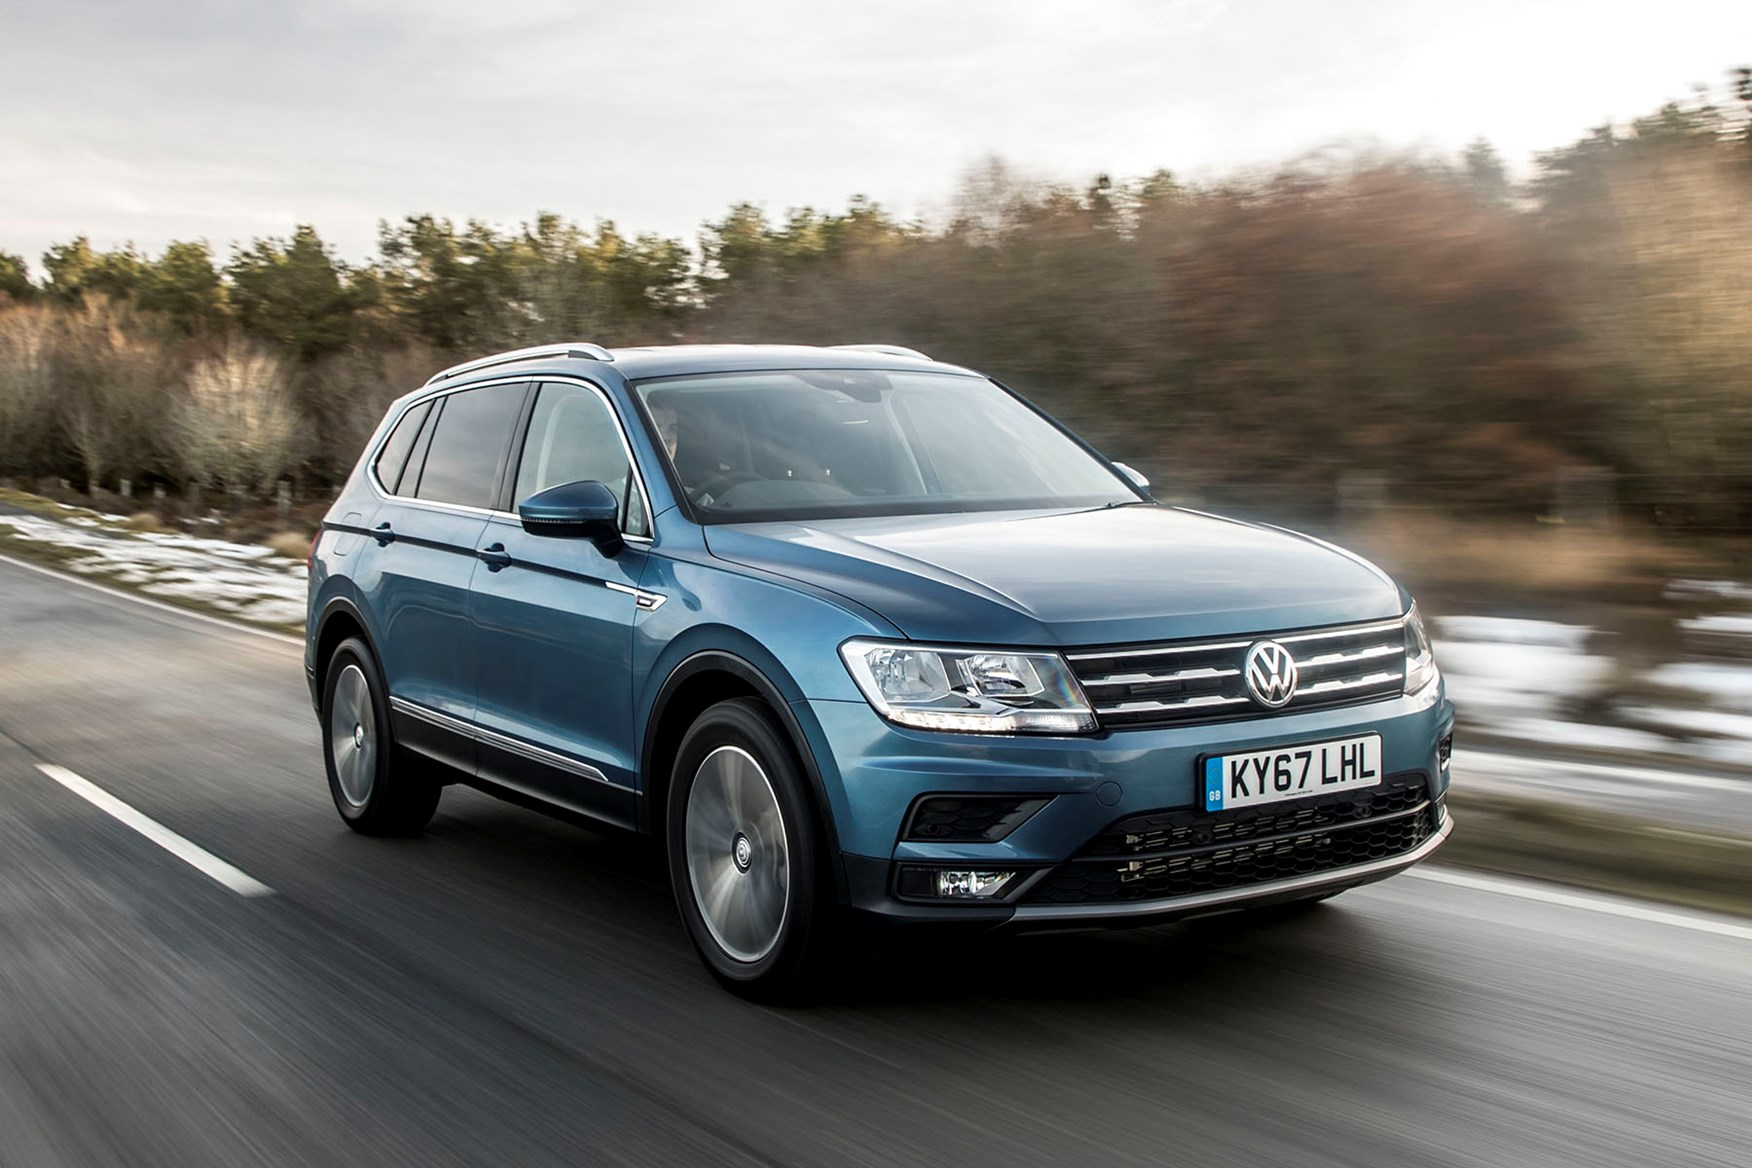 Vw Tiguan Allspace Review Features Safety And Practicality Parkers Volkswagen Touareg Central Wiring Harness Single Parts A Driving